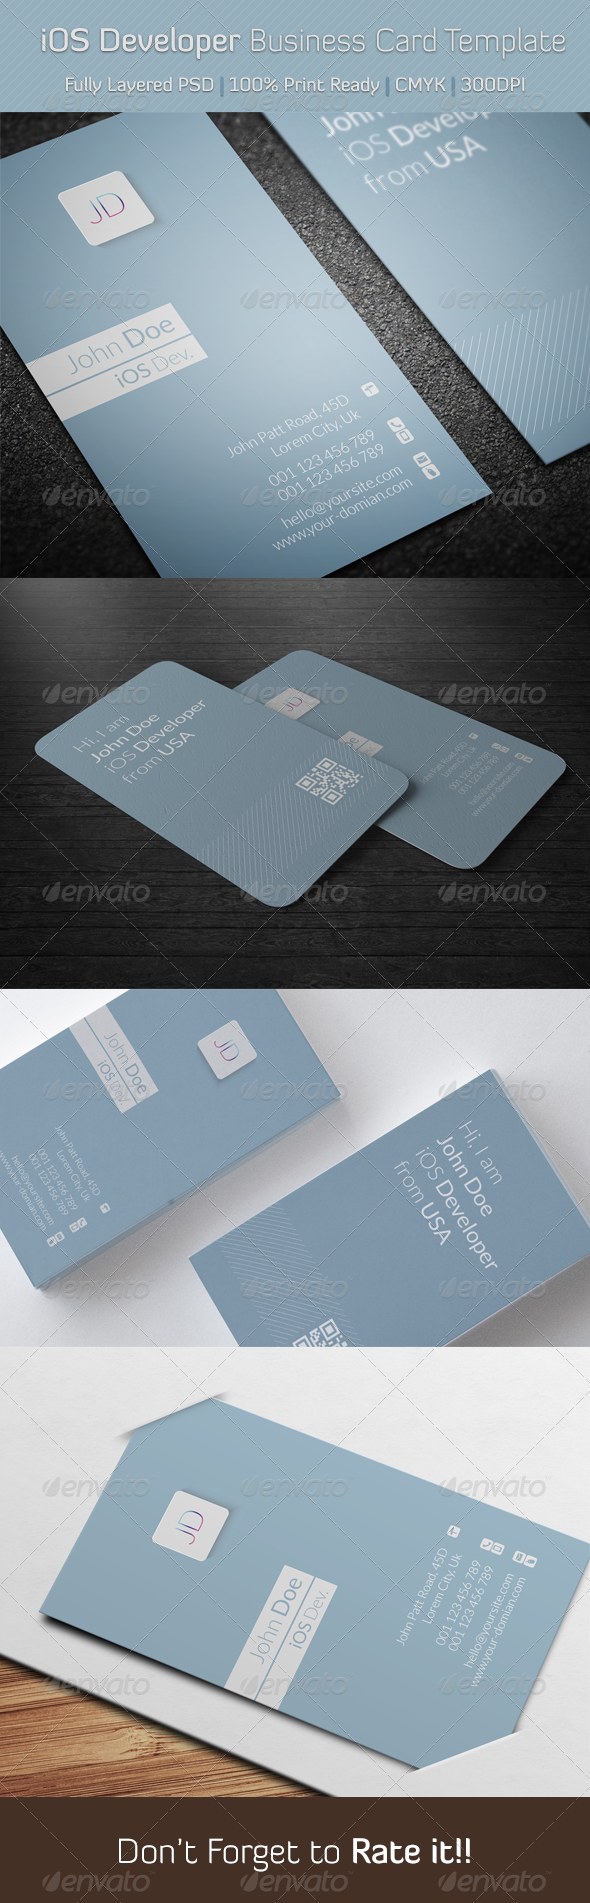 GraphicRiver iOS Developer Business Card Template 6389702